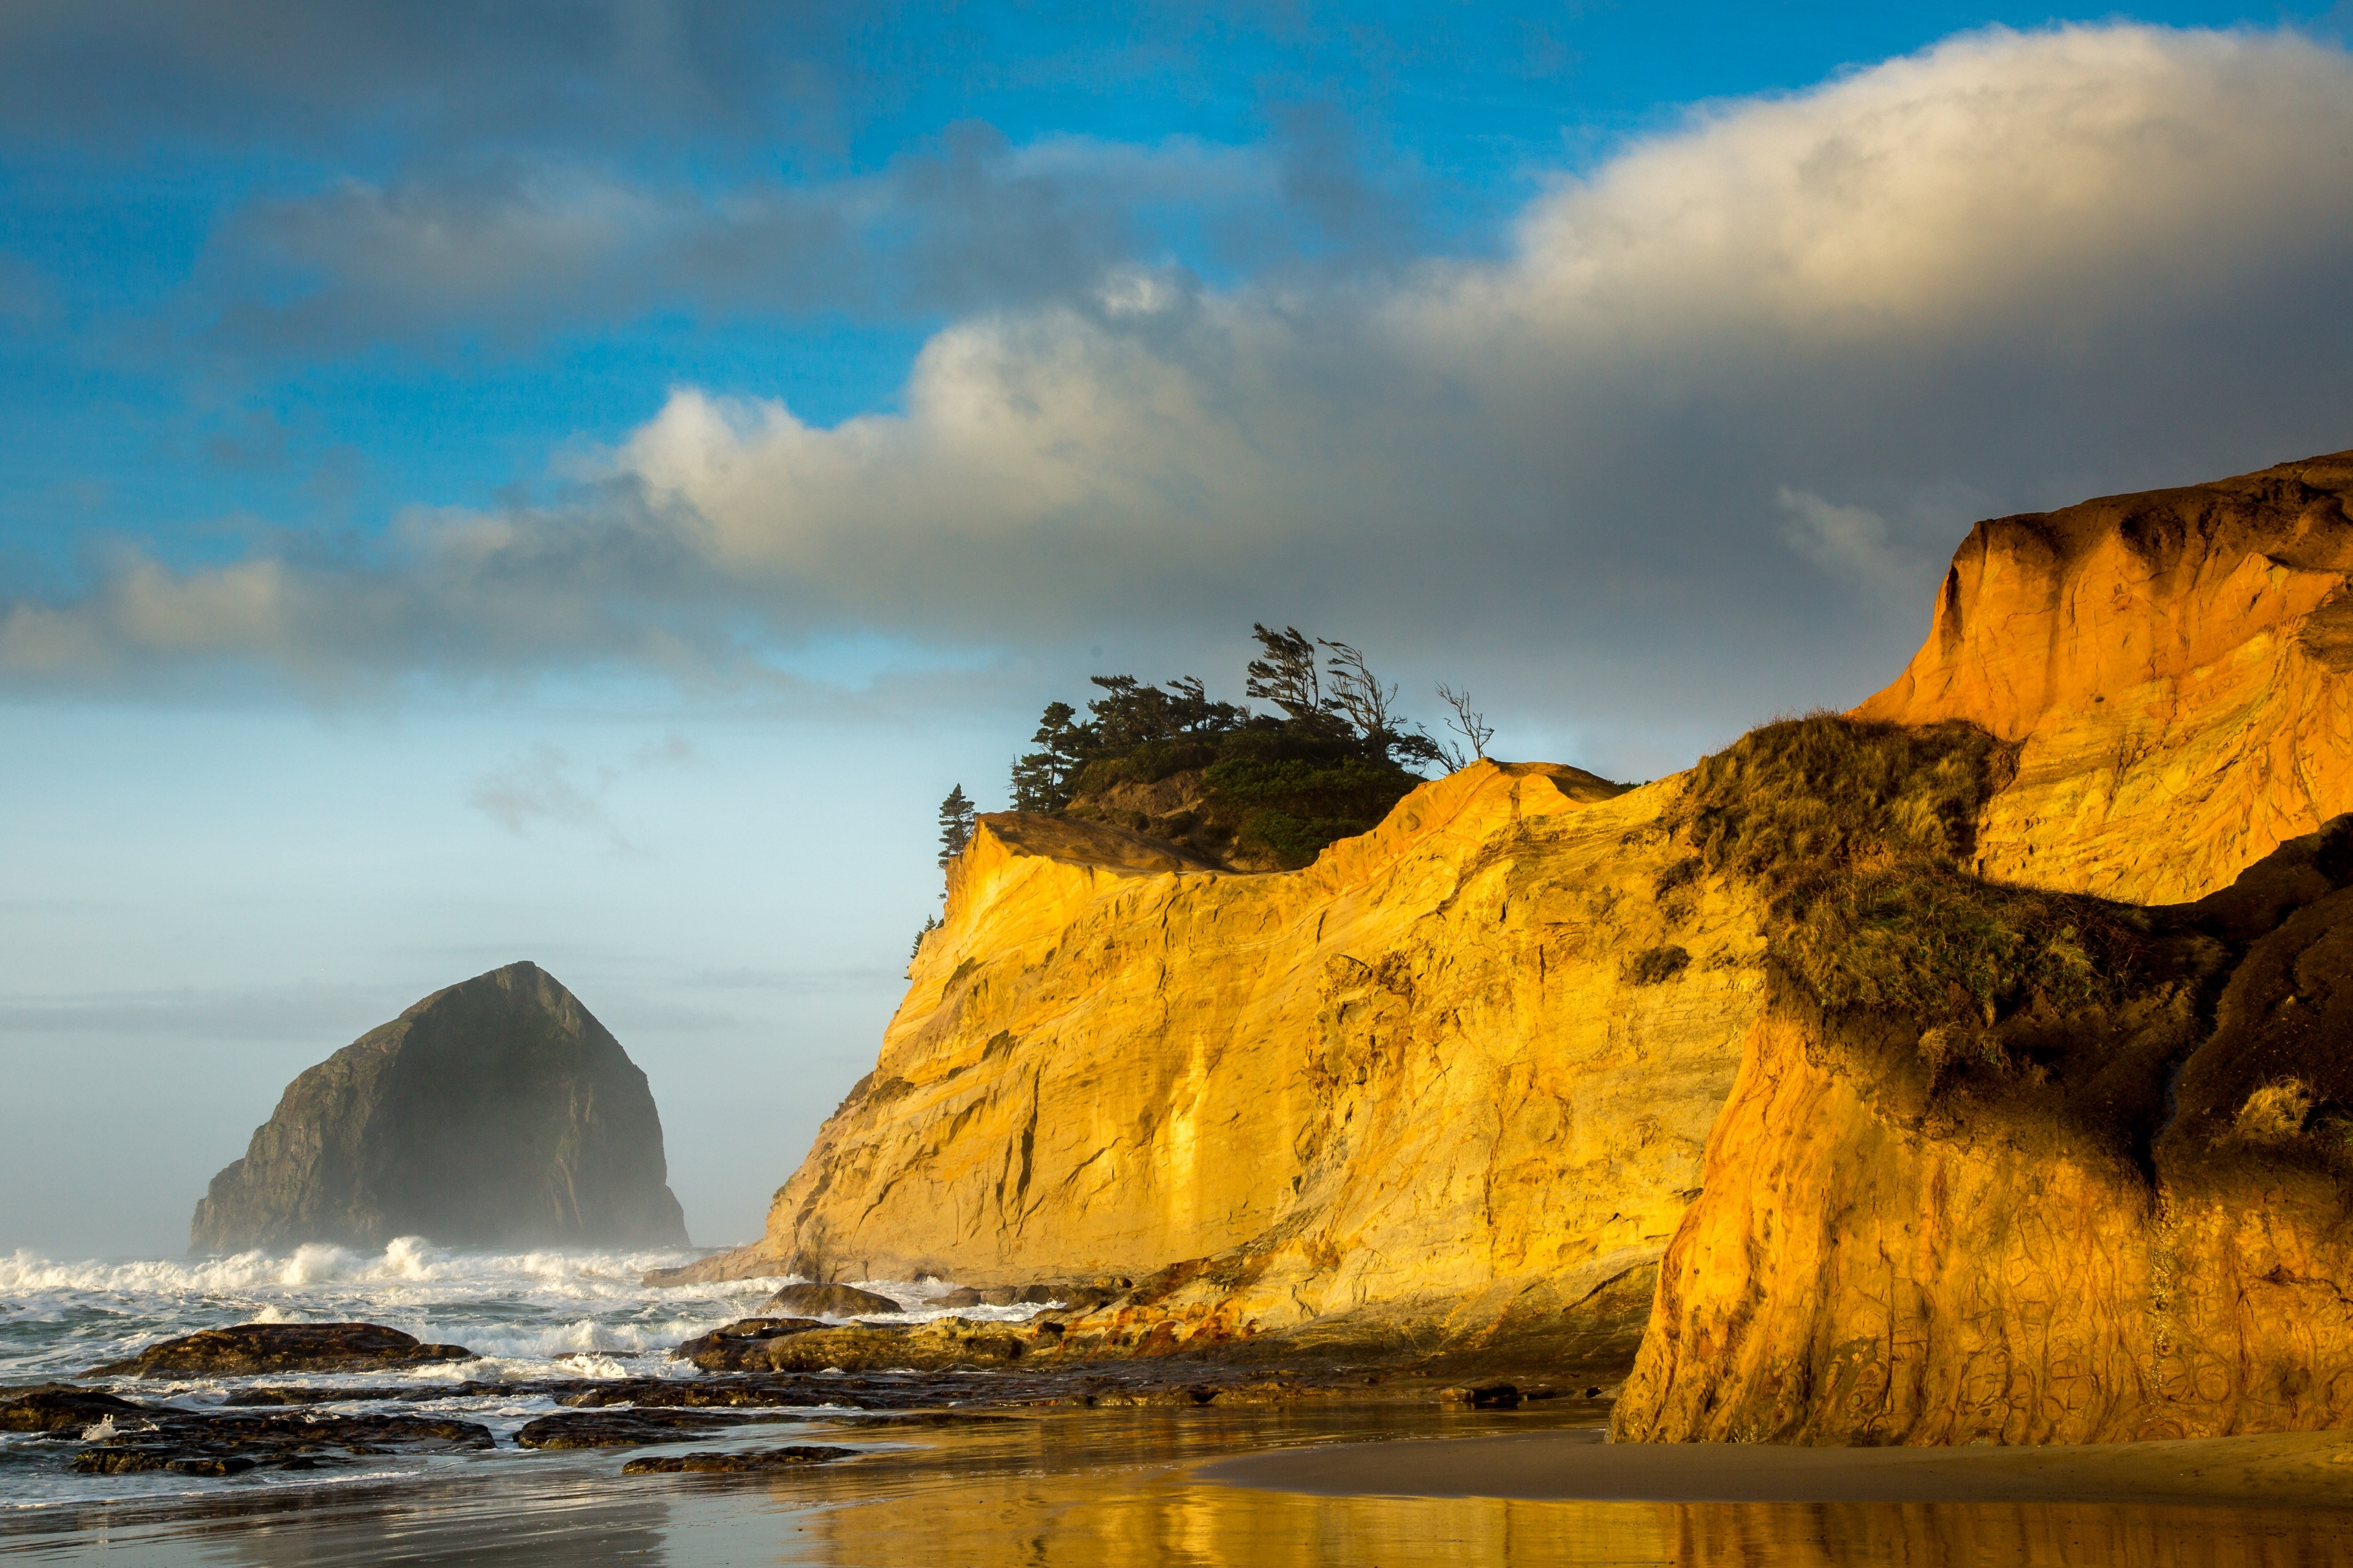 Explore the great outdoors at Cape Kiwanda State Natural Area, a lovely green space in Pacific City. Wander the beautiful beaches in this relaxing area.